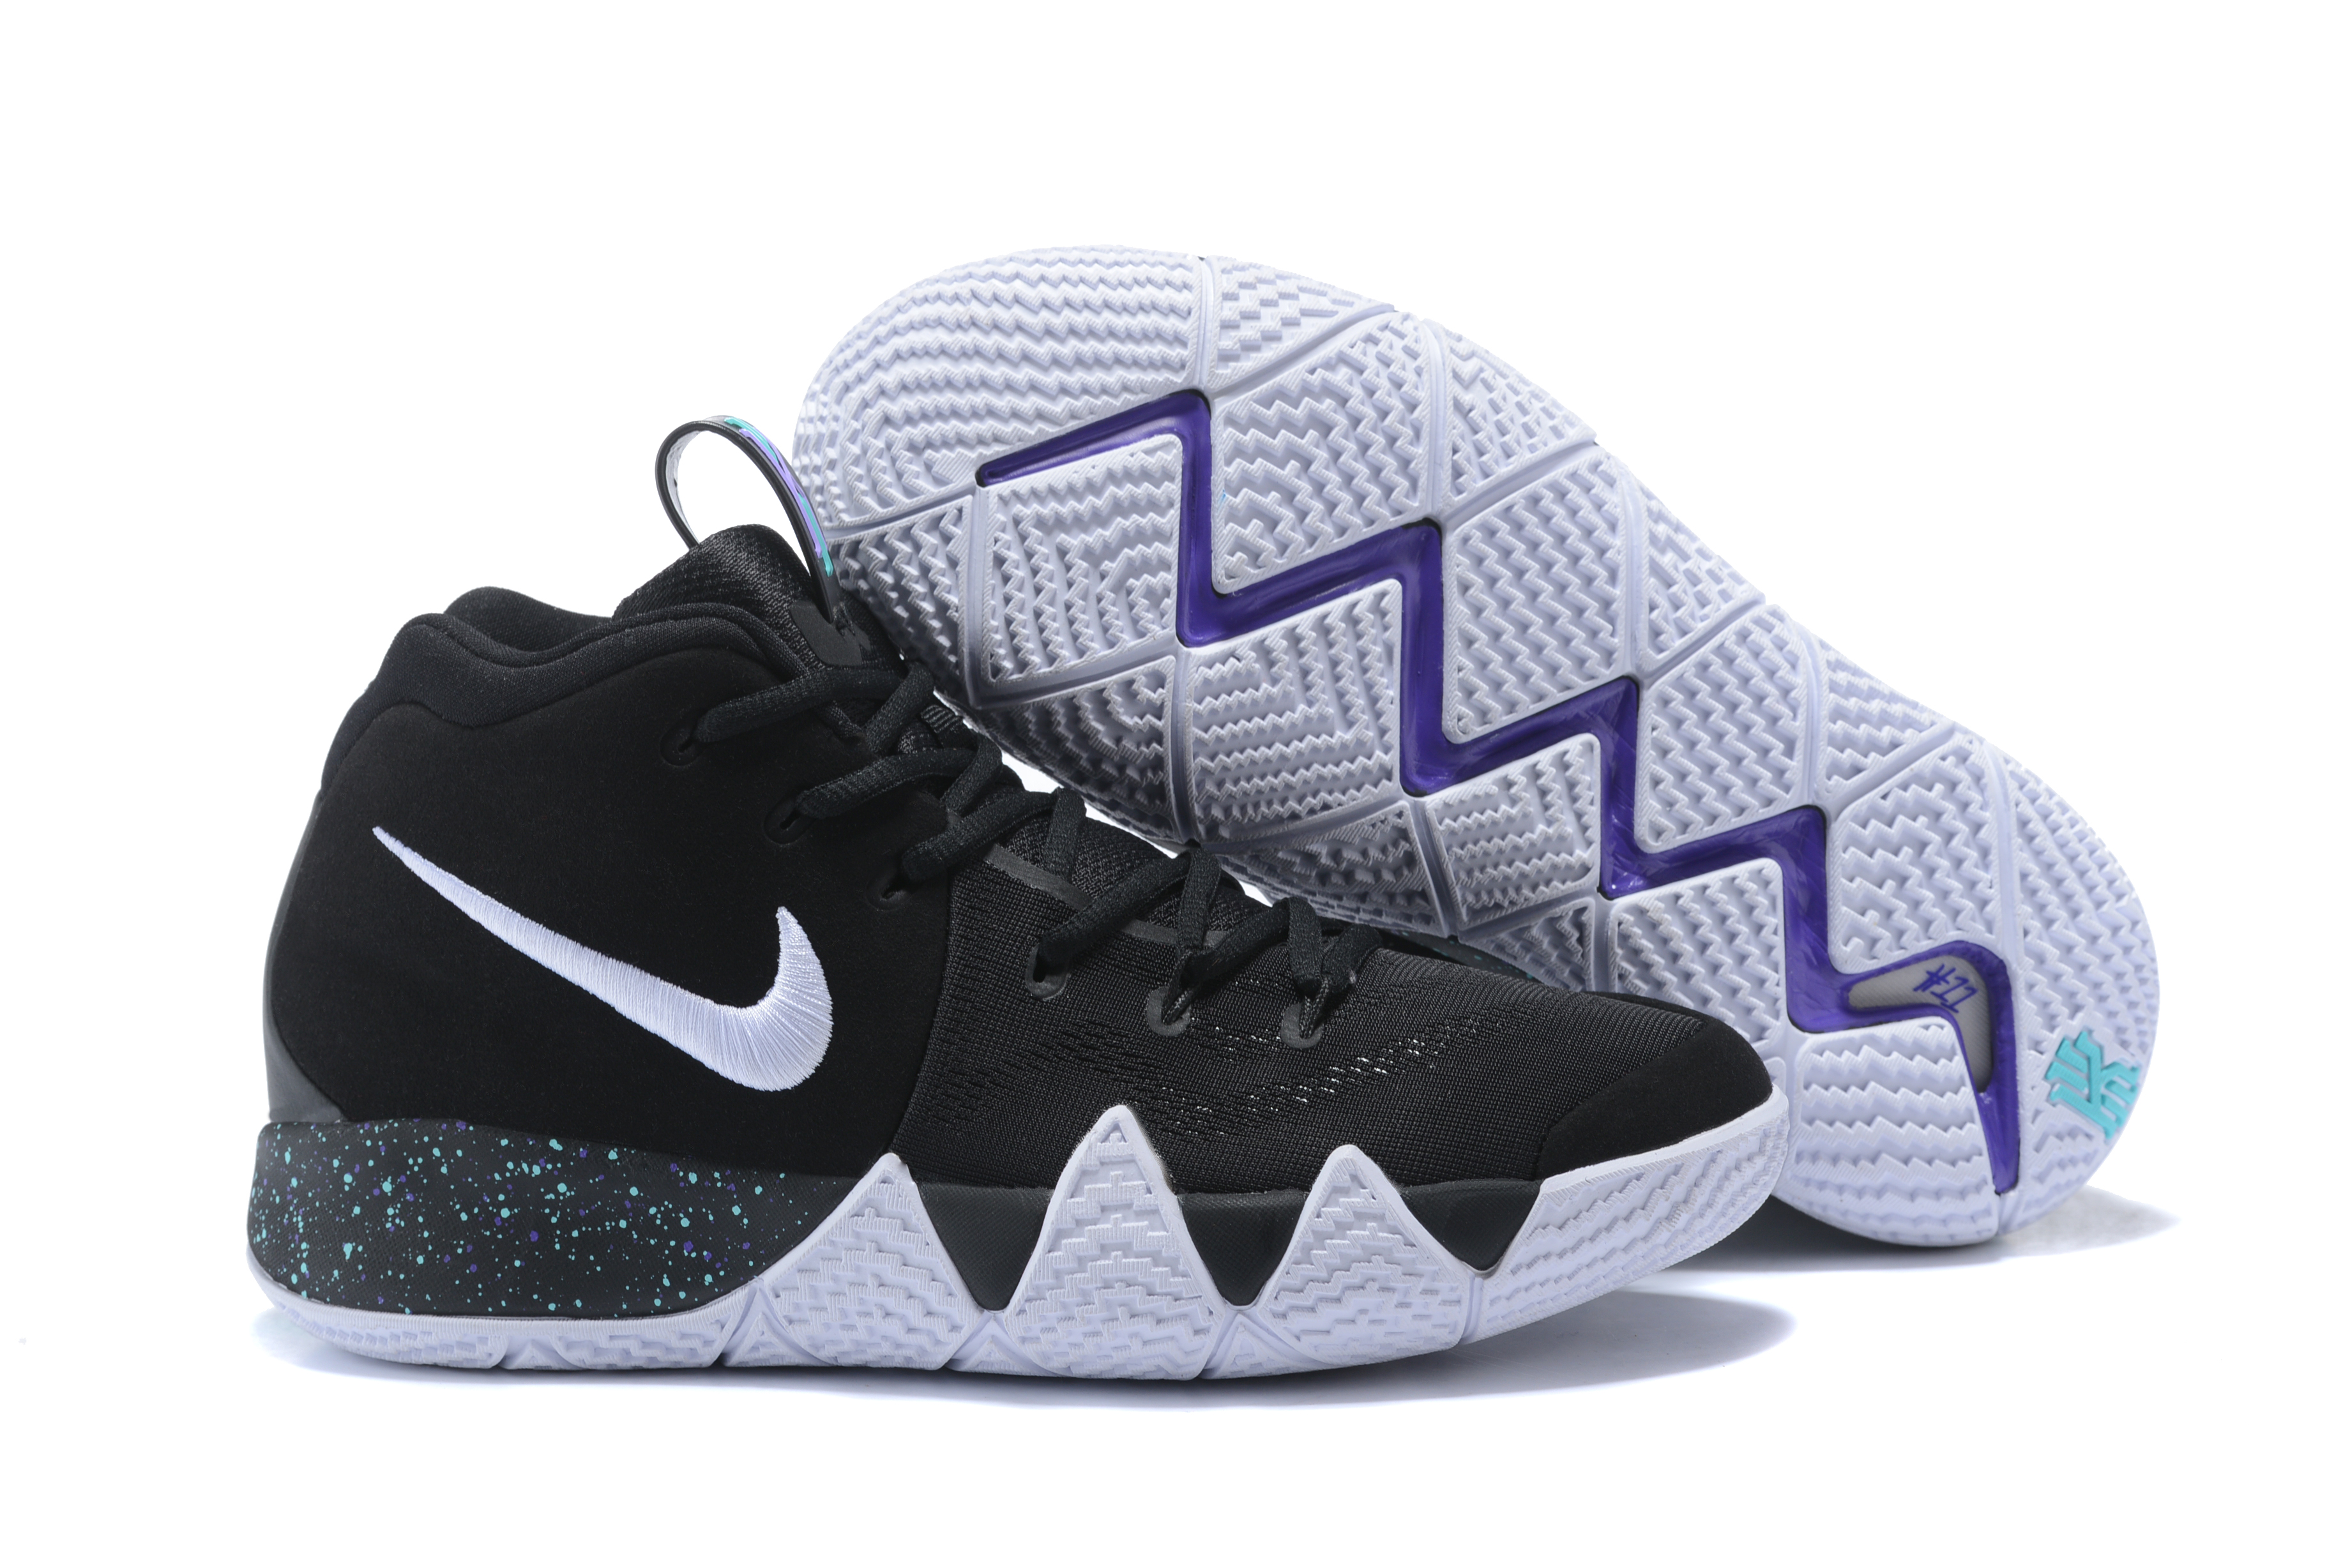 2017 Nike Kyrie 4 Black White Basketball Shoes